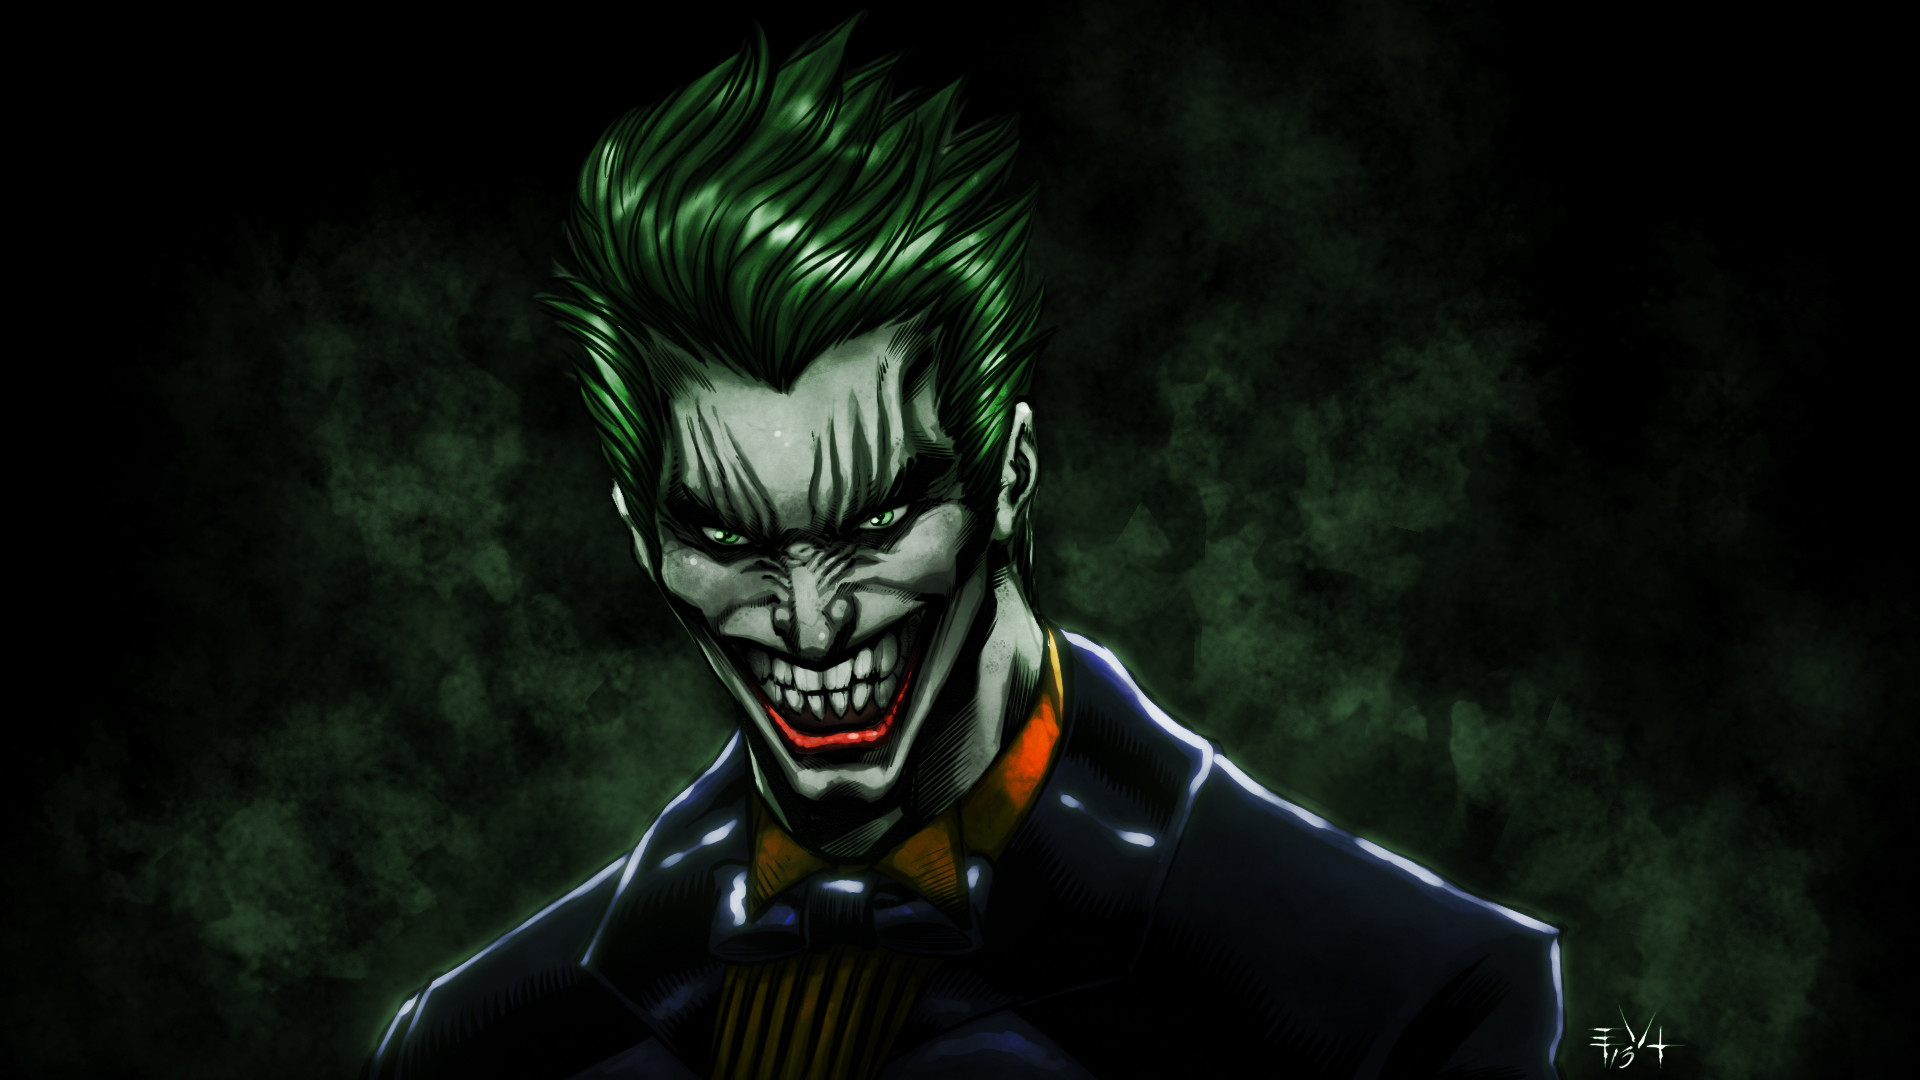 Batman vs Joker Wallpaper (73+ images)